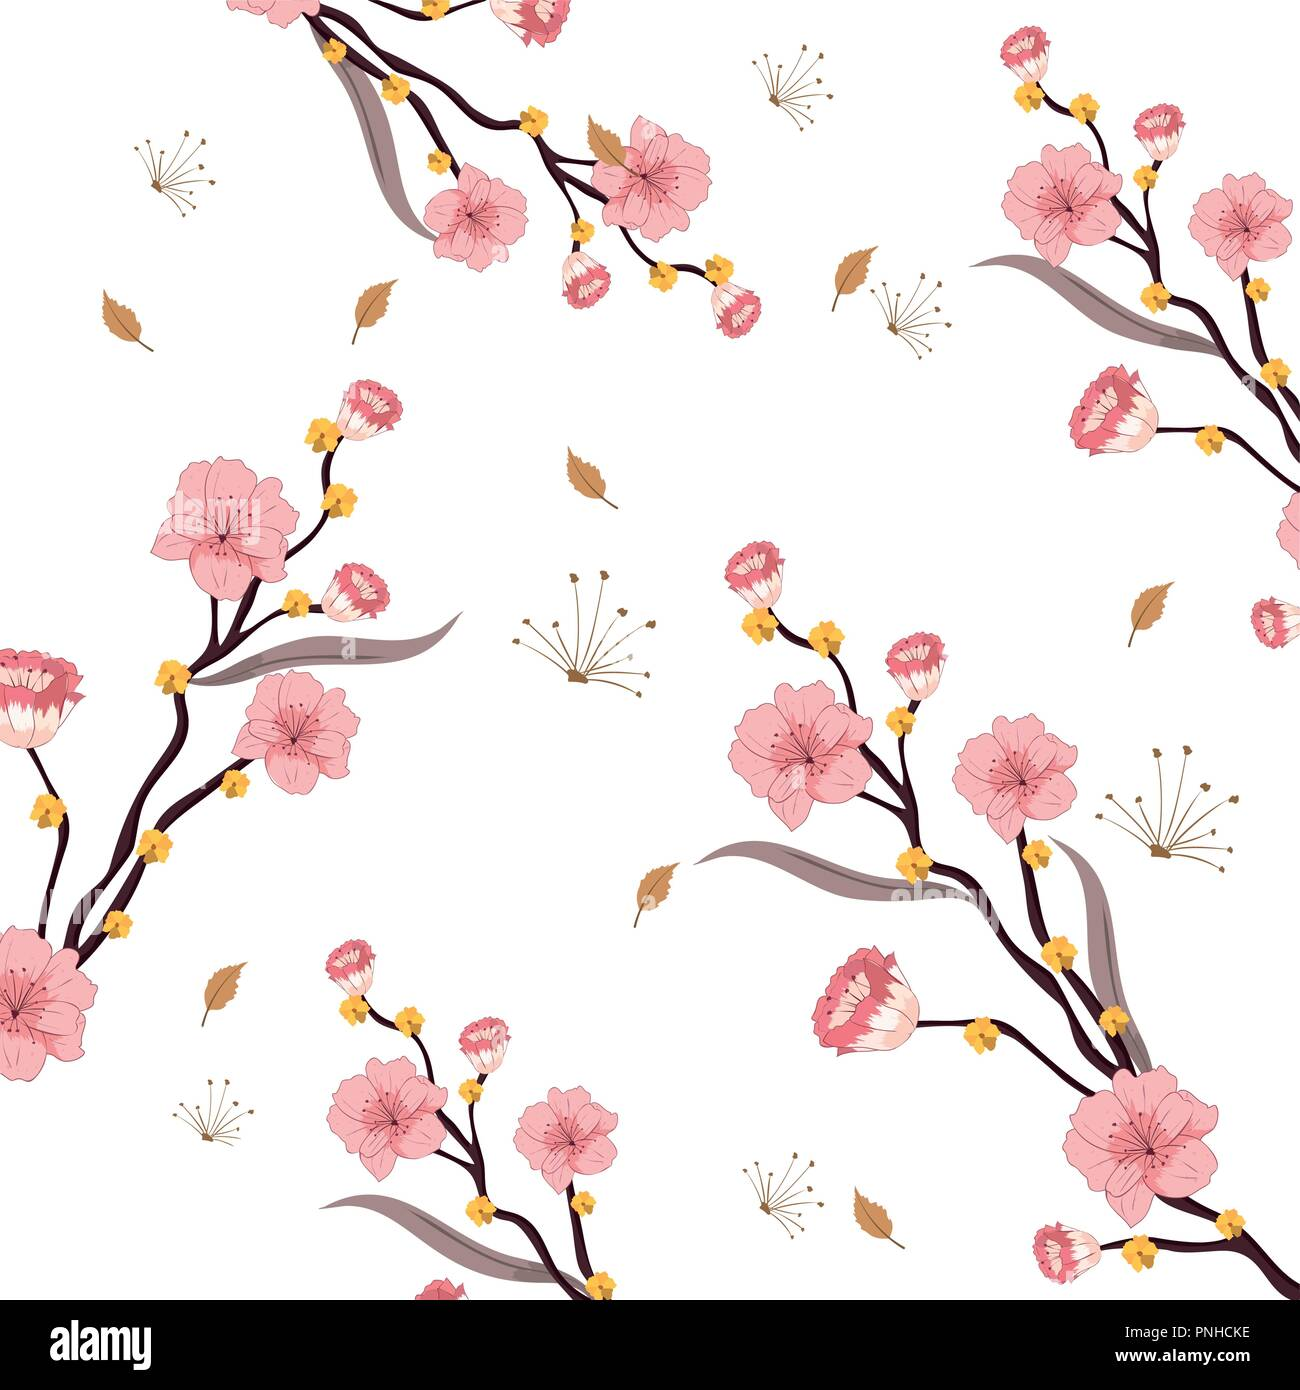 nature rustic flowers with branches leaves - Stock Image